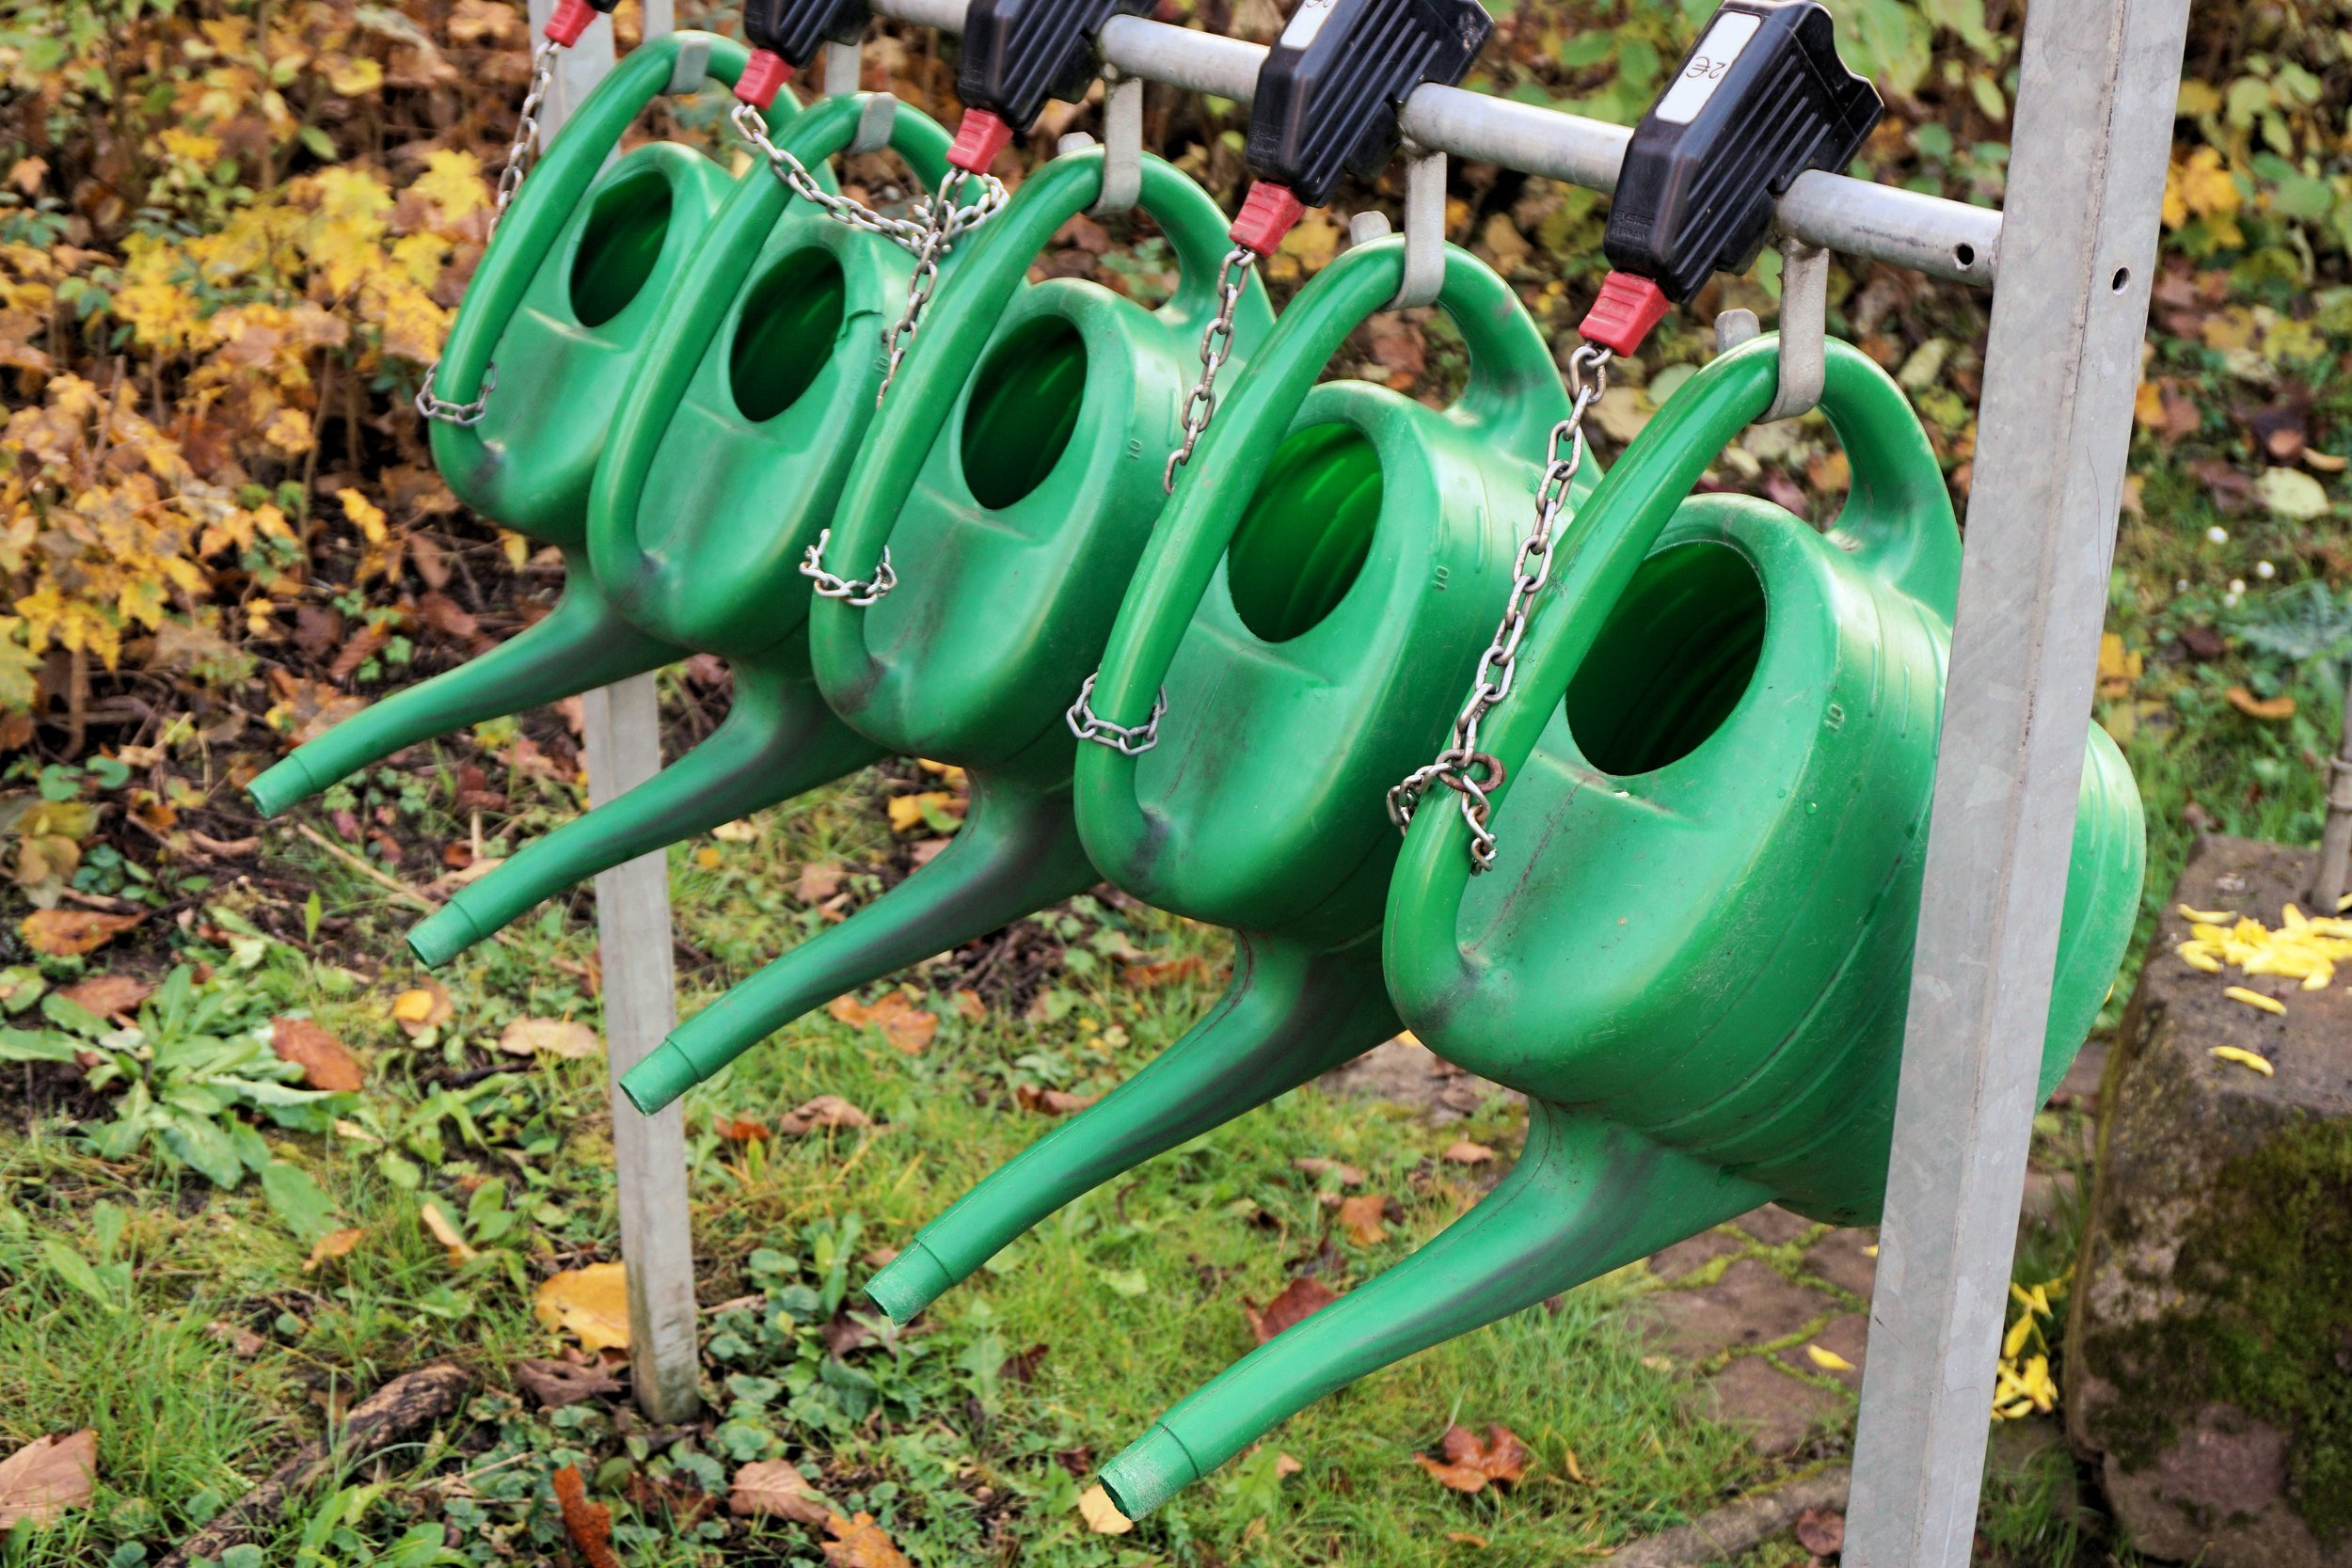 watering-cans-casting-irrigation-1039265.jpg